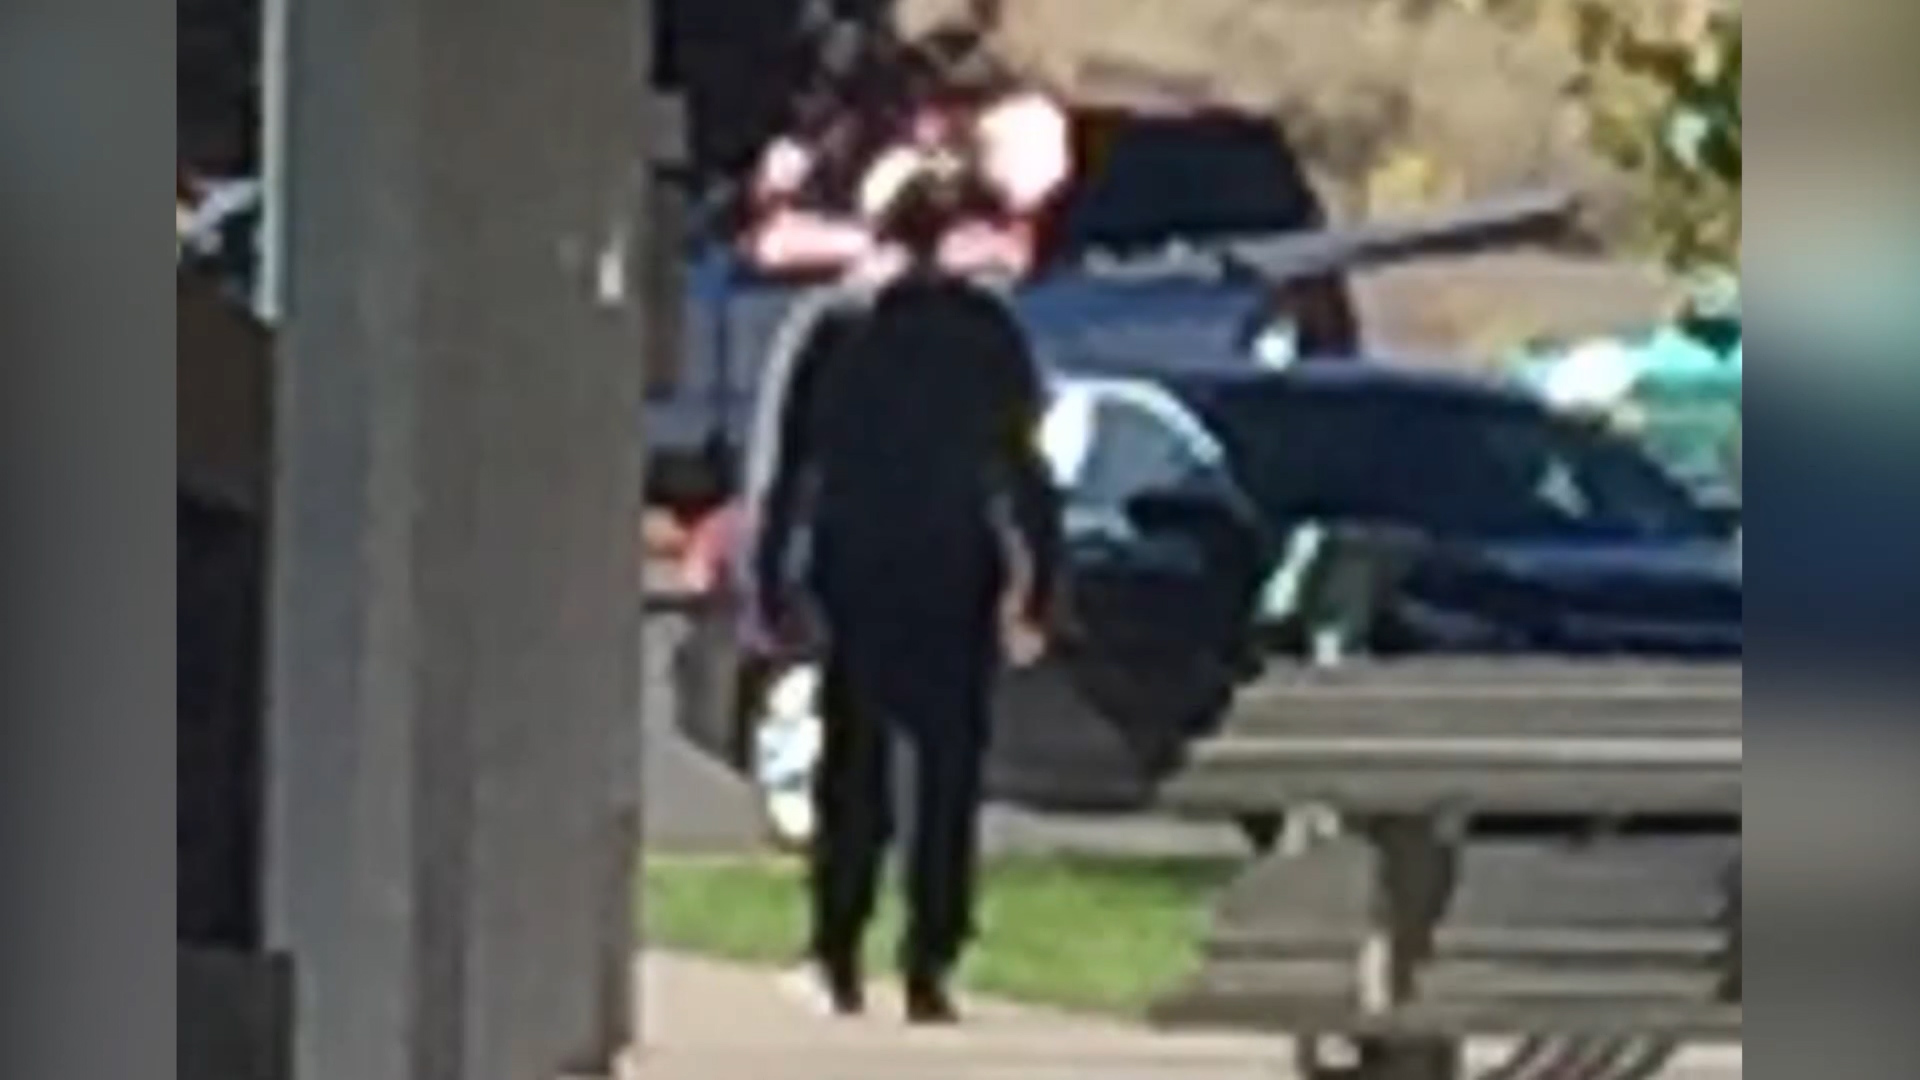 Police encourage people to be aware on Provo trail after 3 women accosted